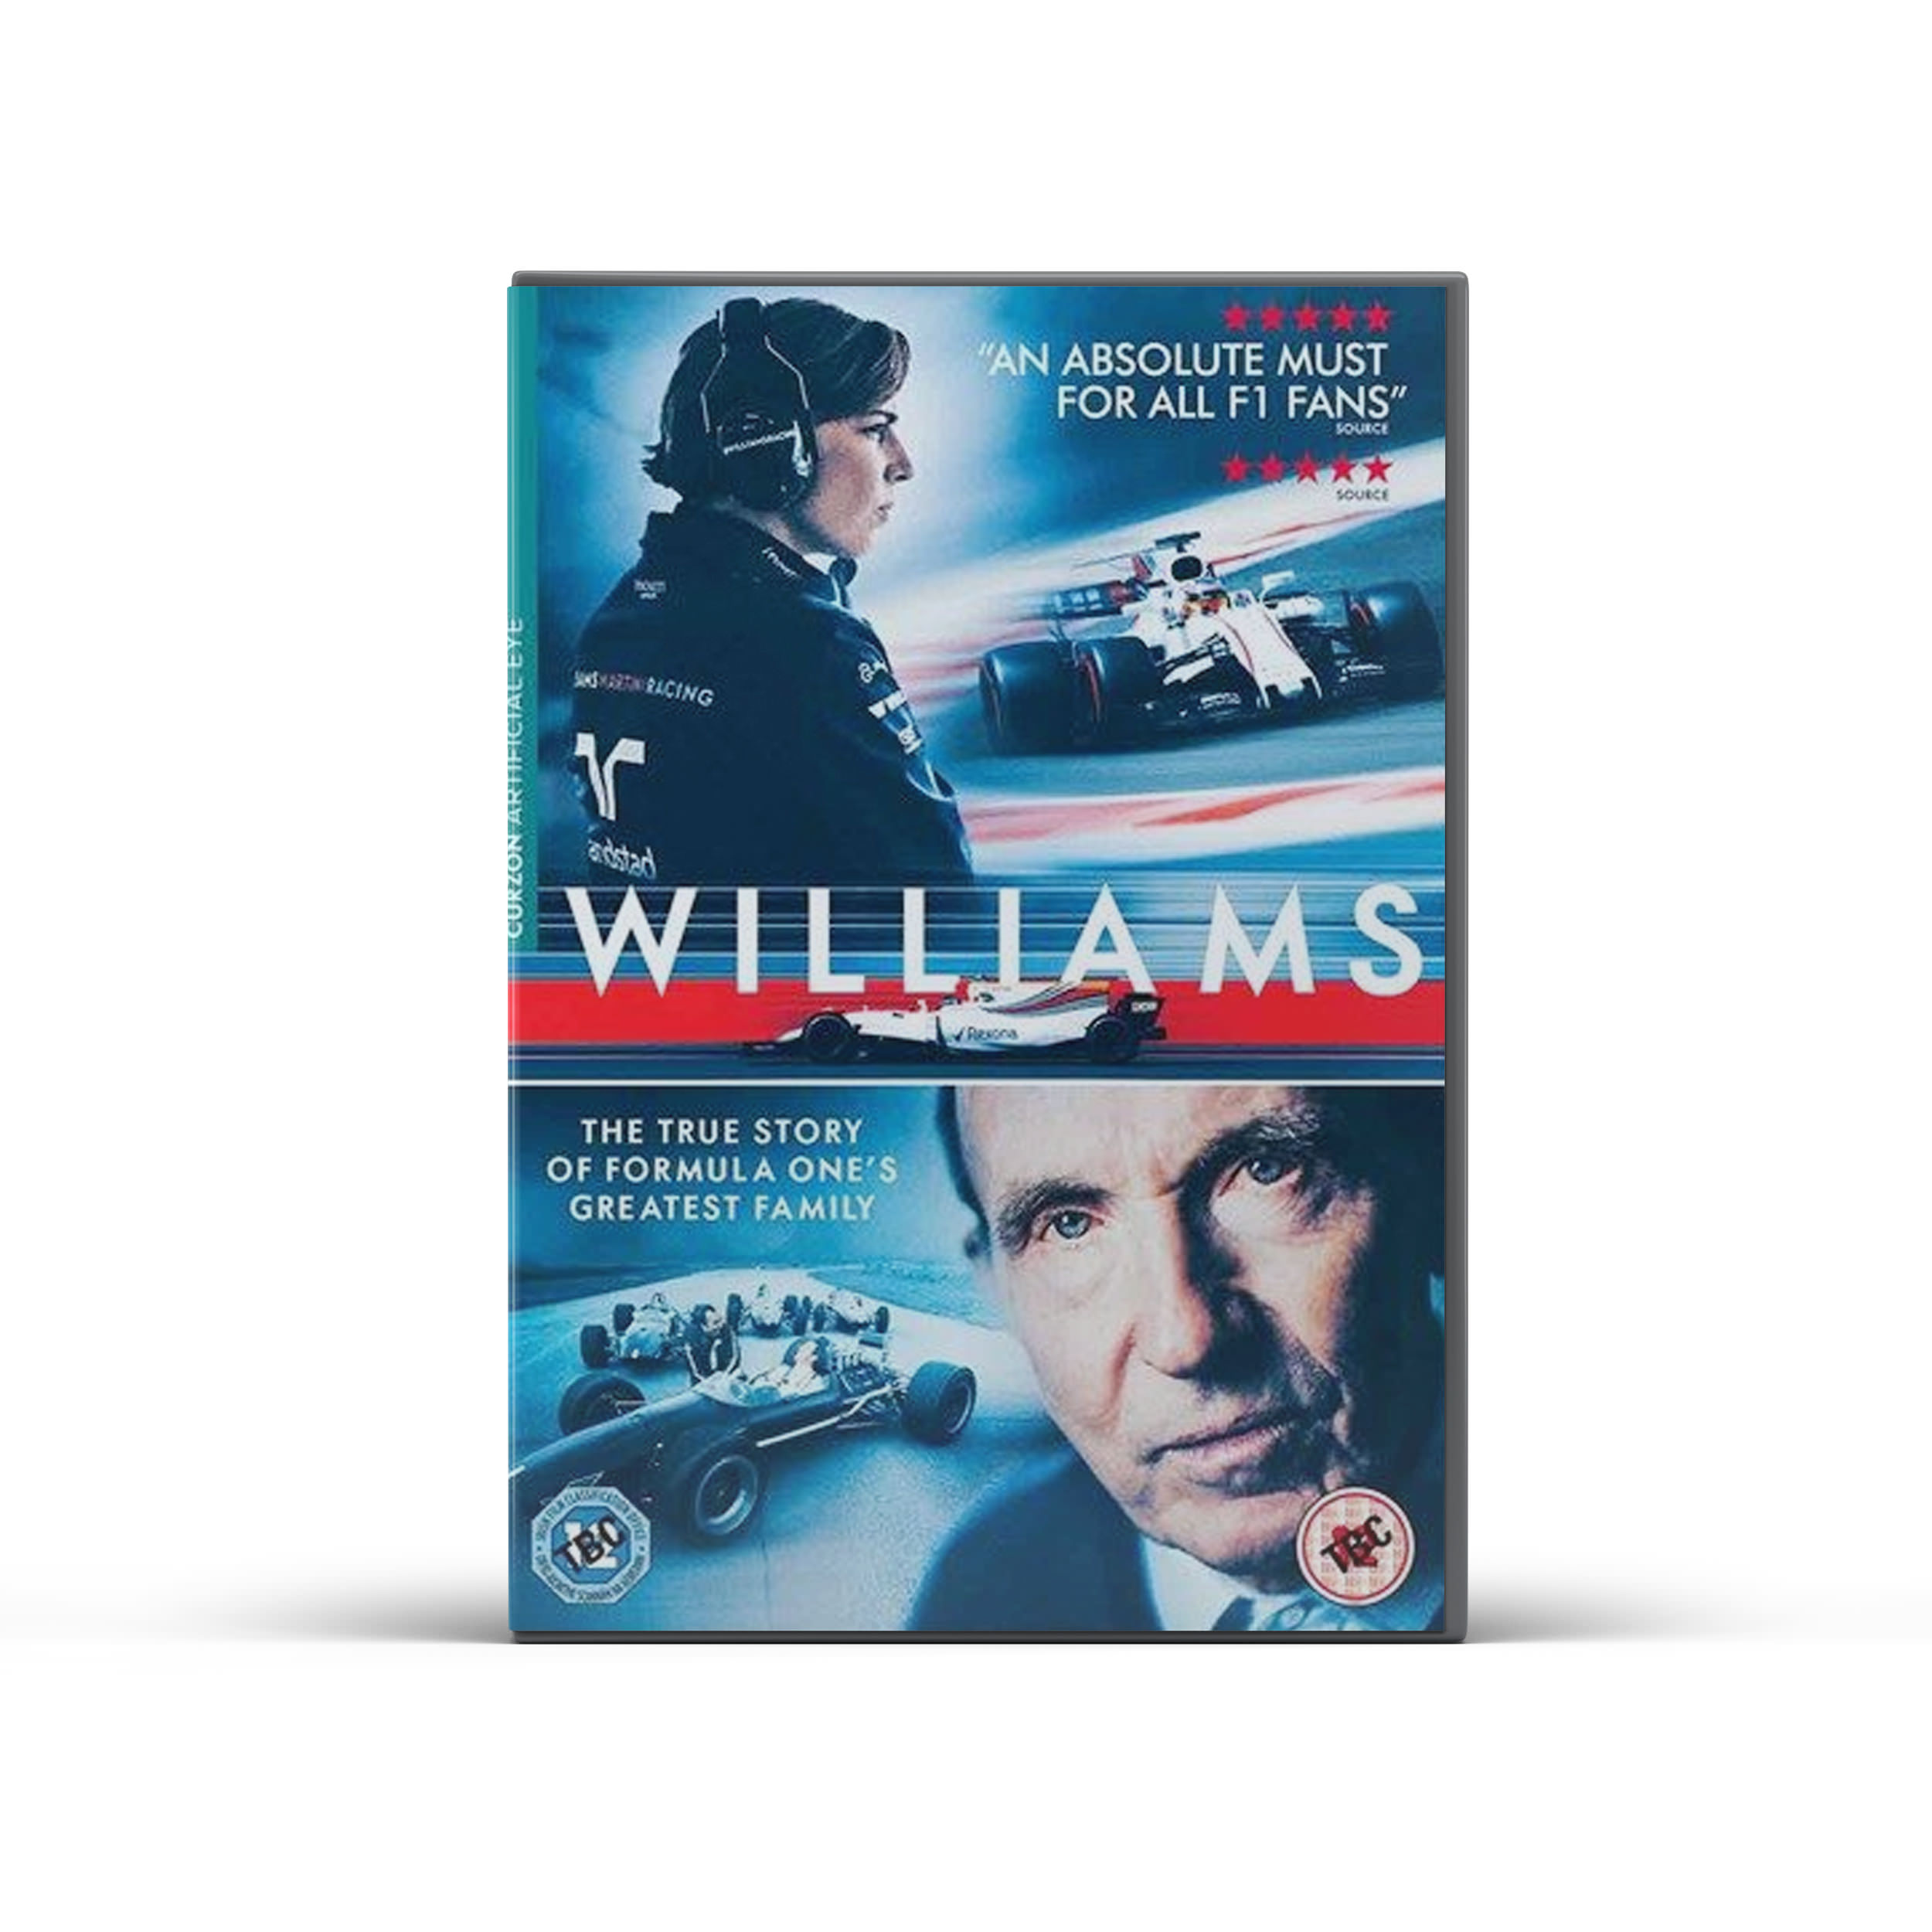 Product image for Williams DVD